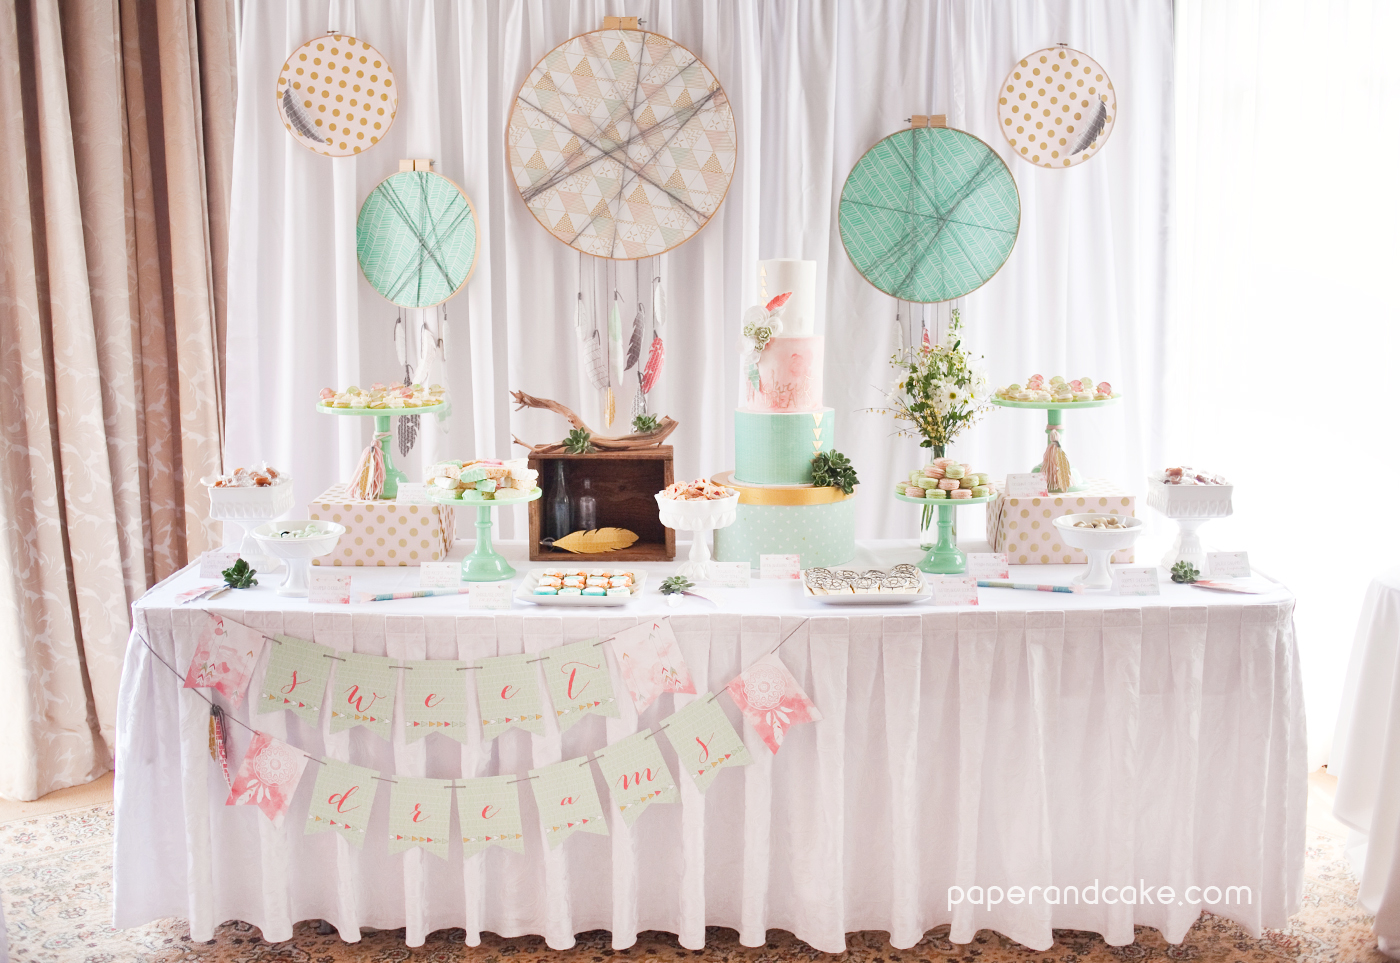 Bohemian Printable Party - Paper and Cake Paper and Cake